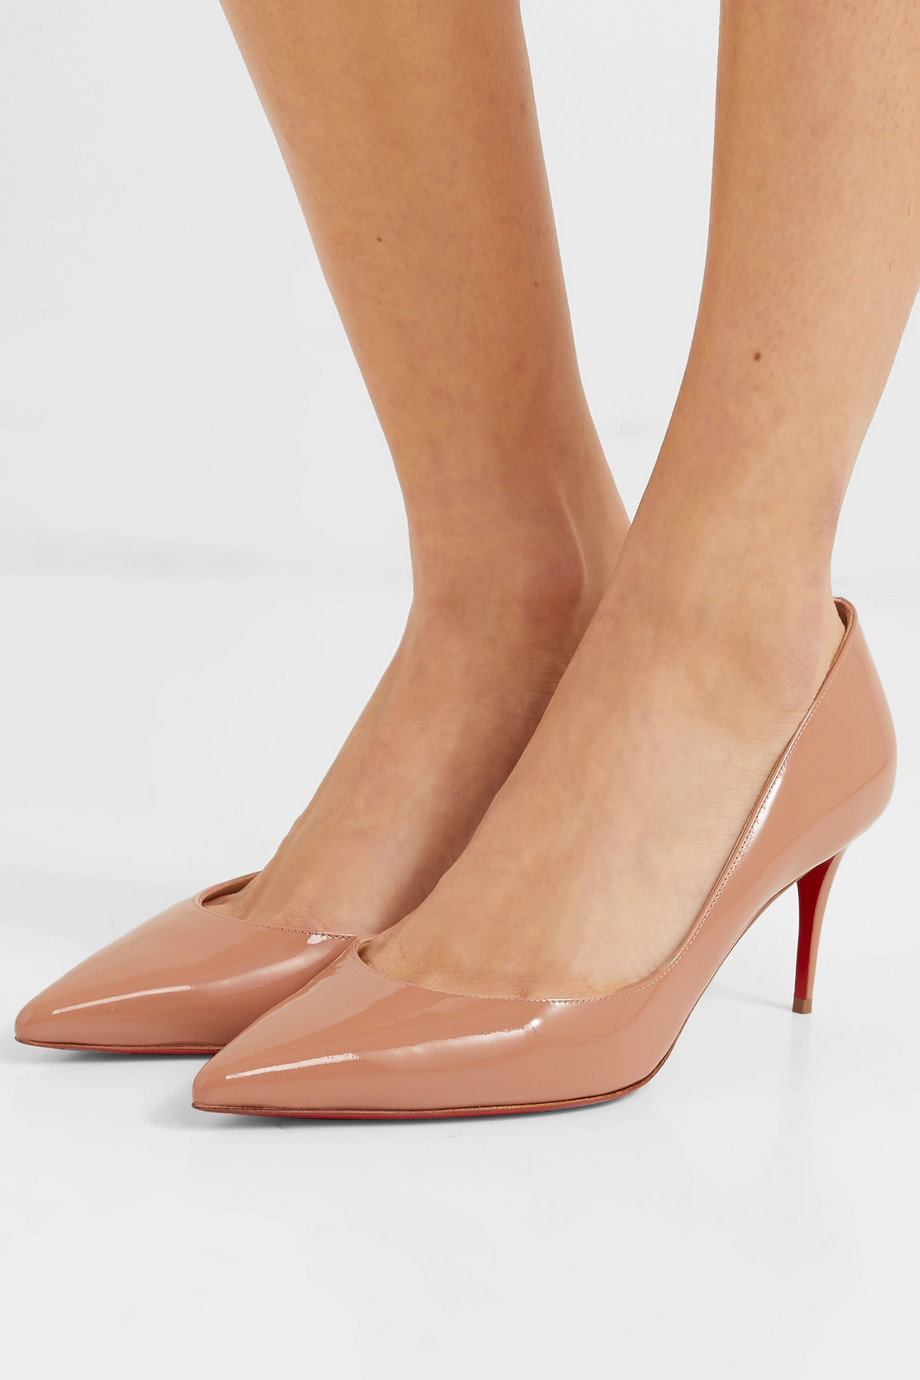 Christian Louboutin Iriza 70 patent-leather pumps